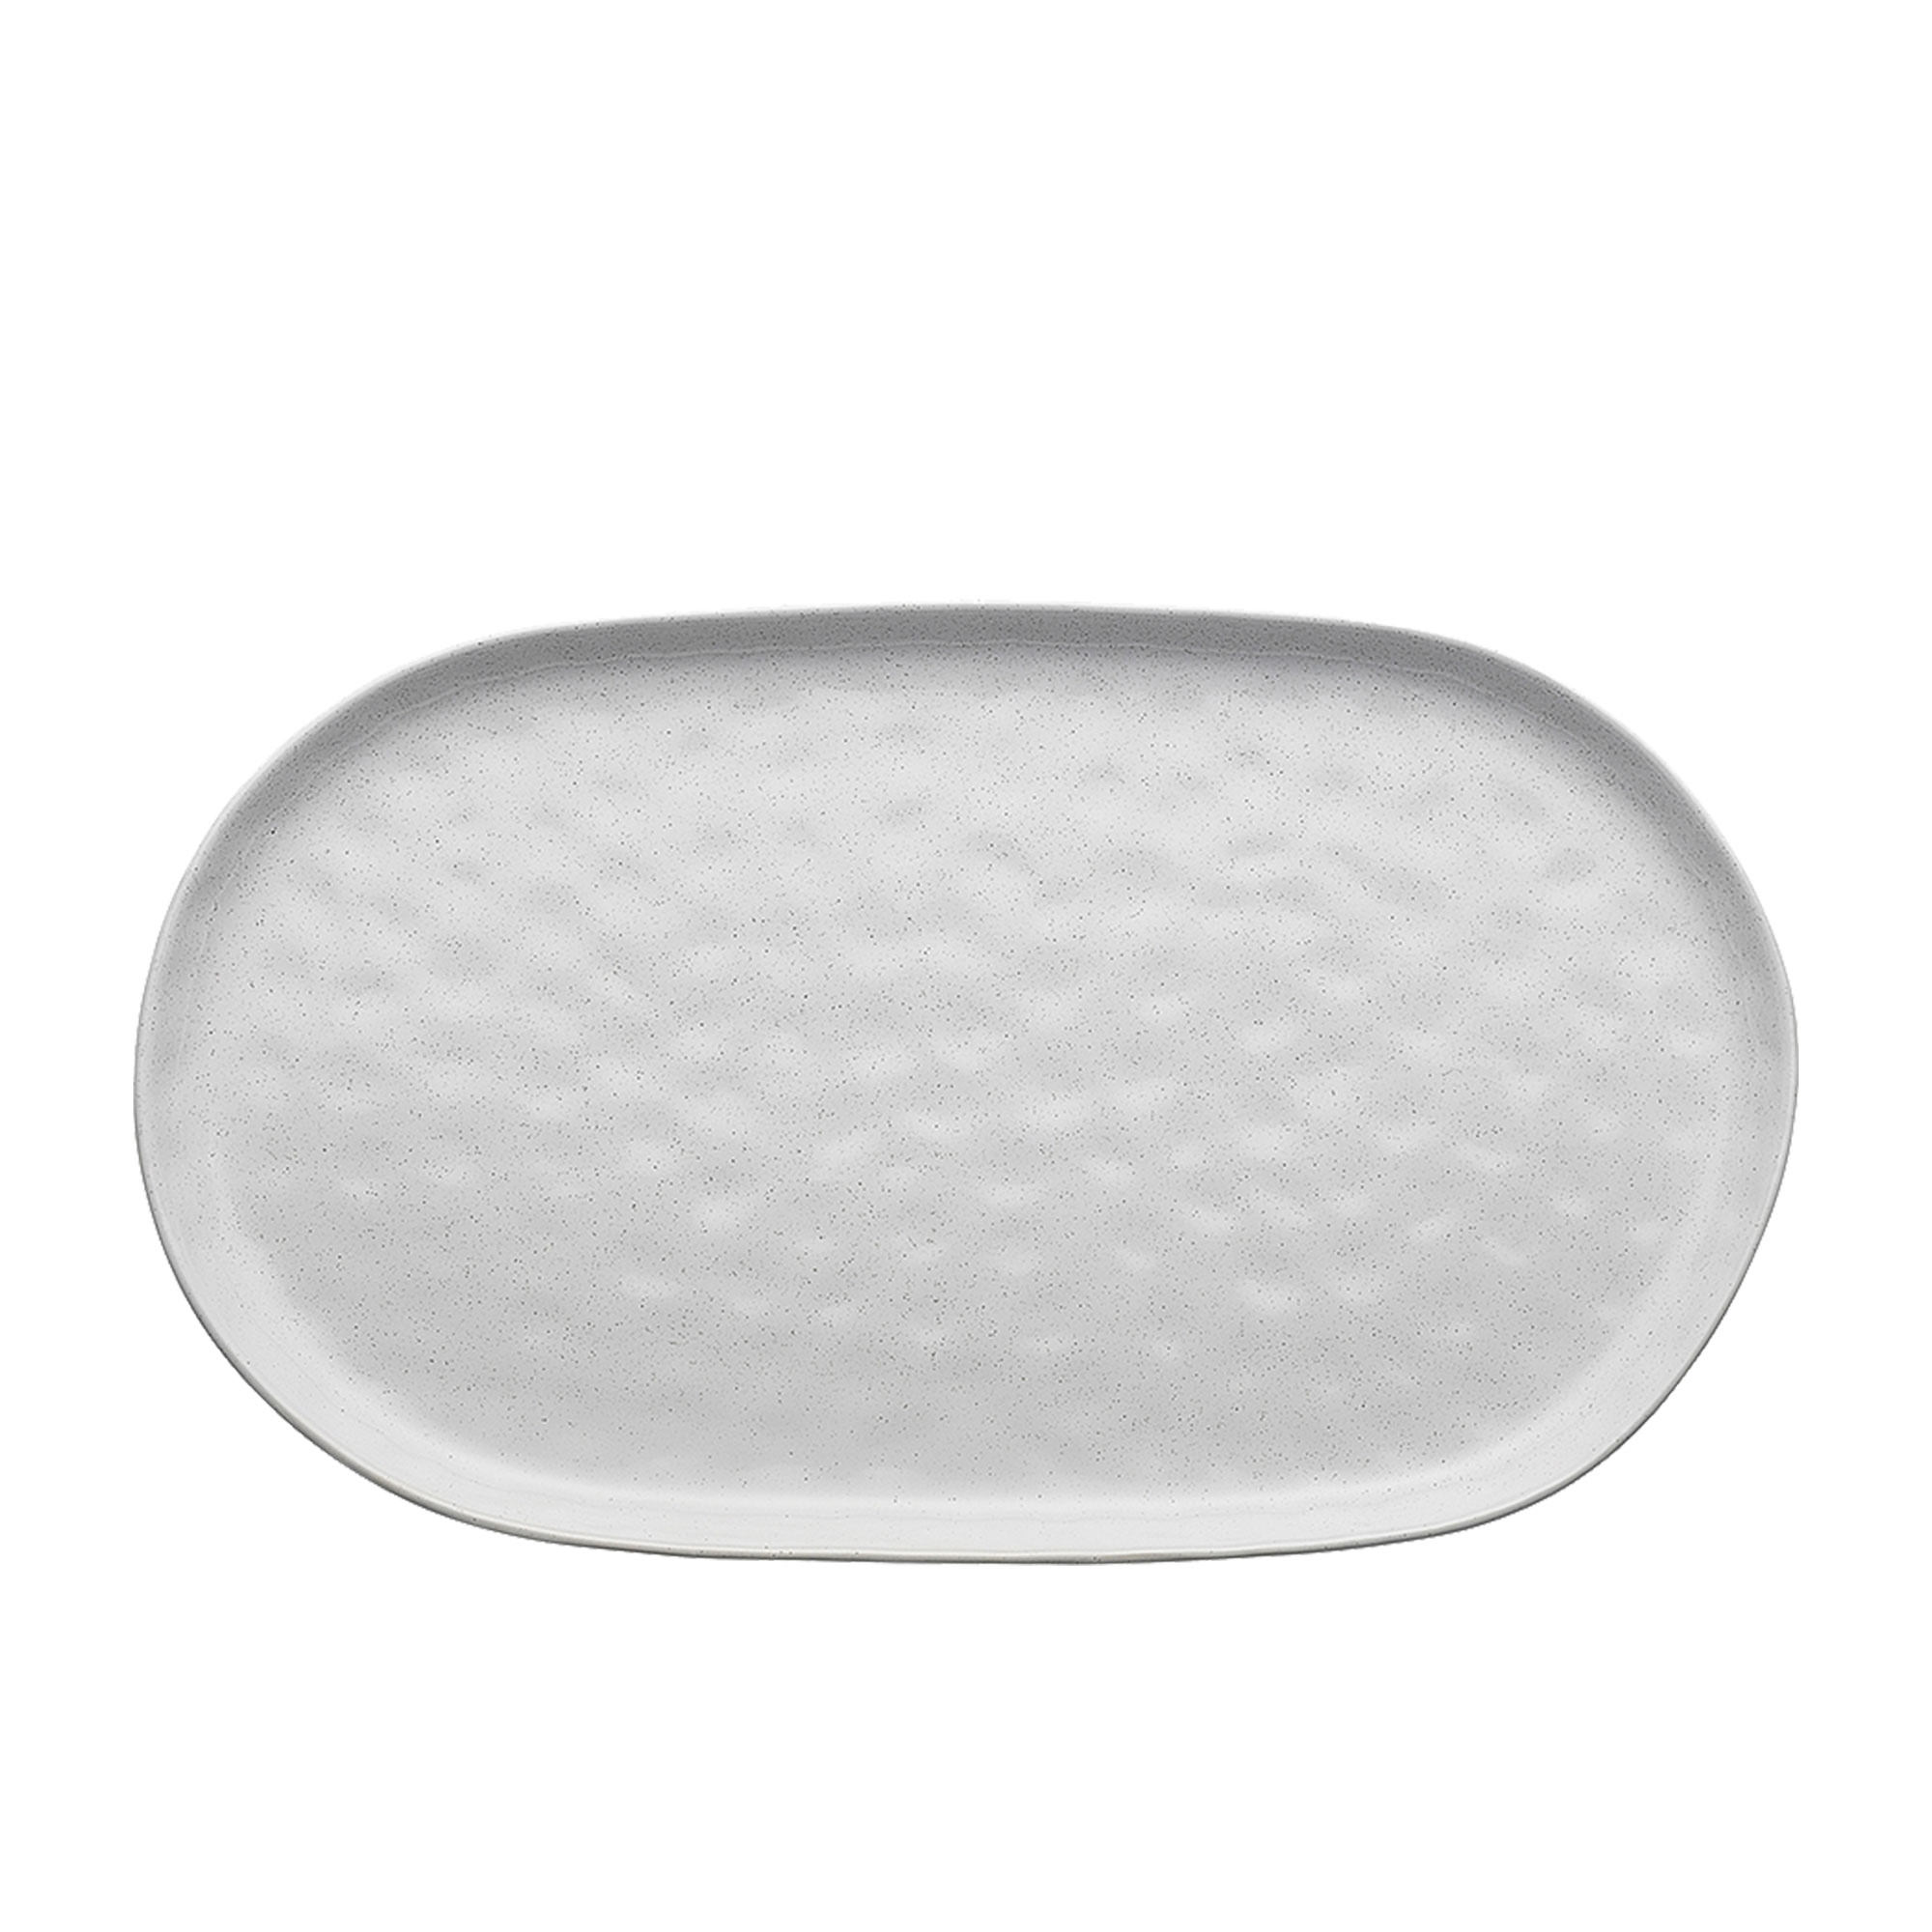 Ecology Speckle Oval Serving Platter 40x24x2cm Milk